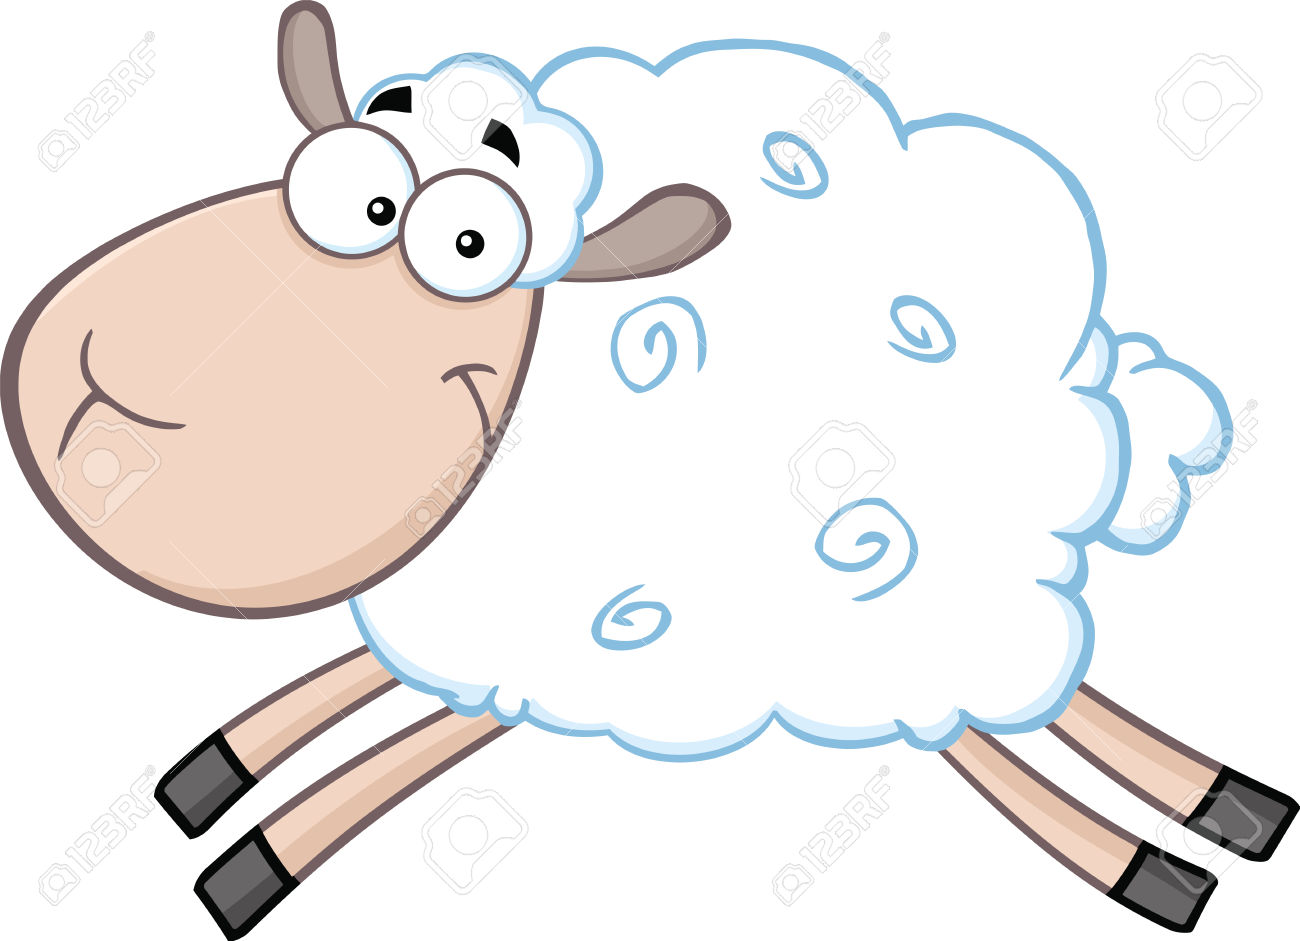 1300x941 Cartoon Sheep Pictures Gallery Images)